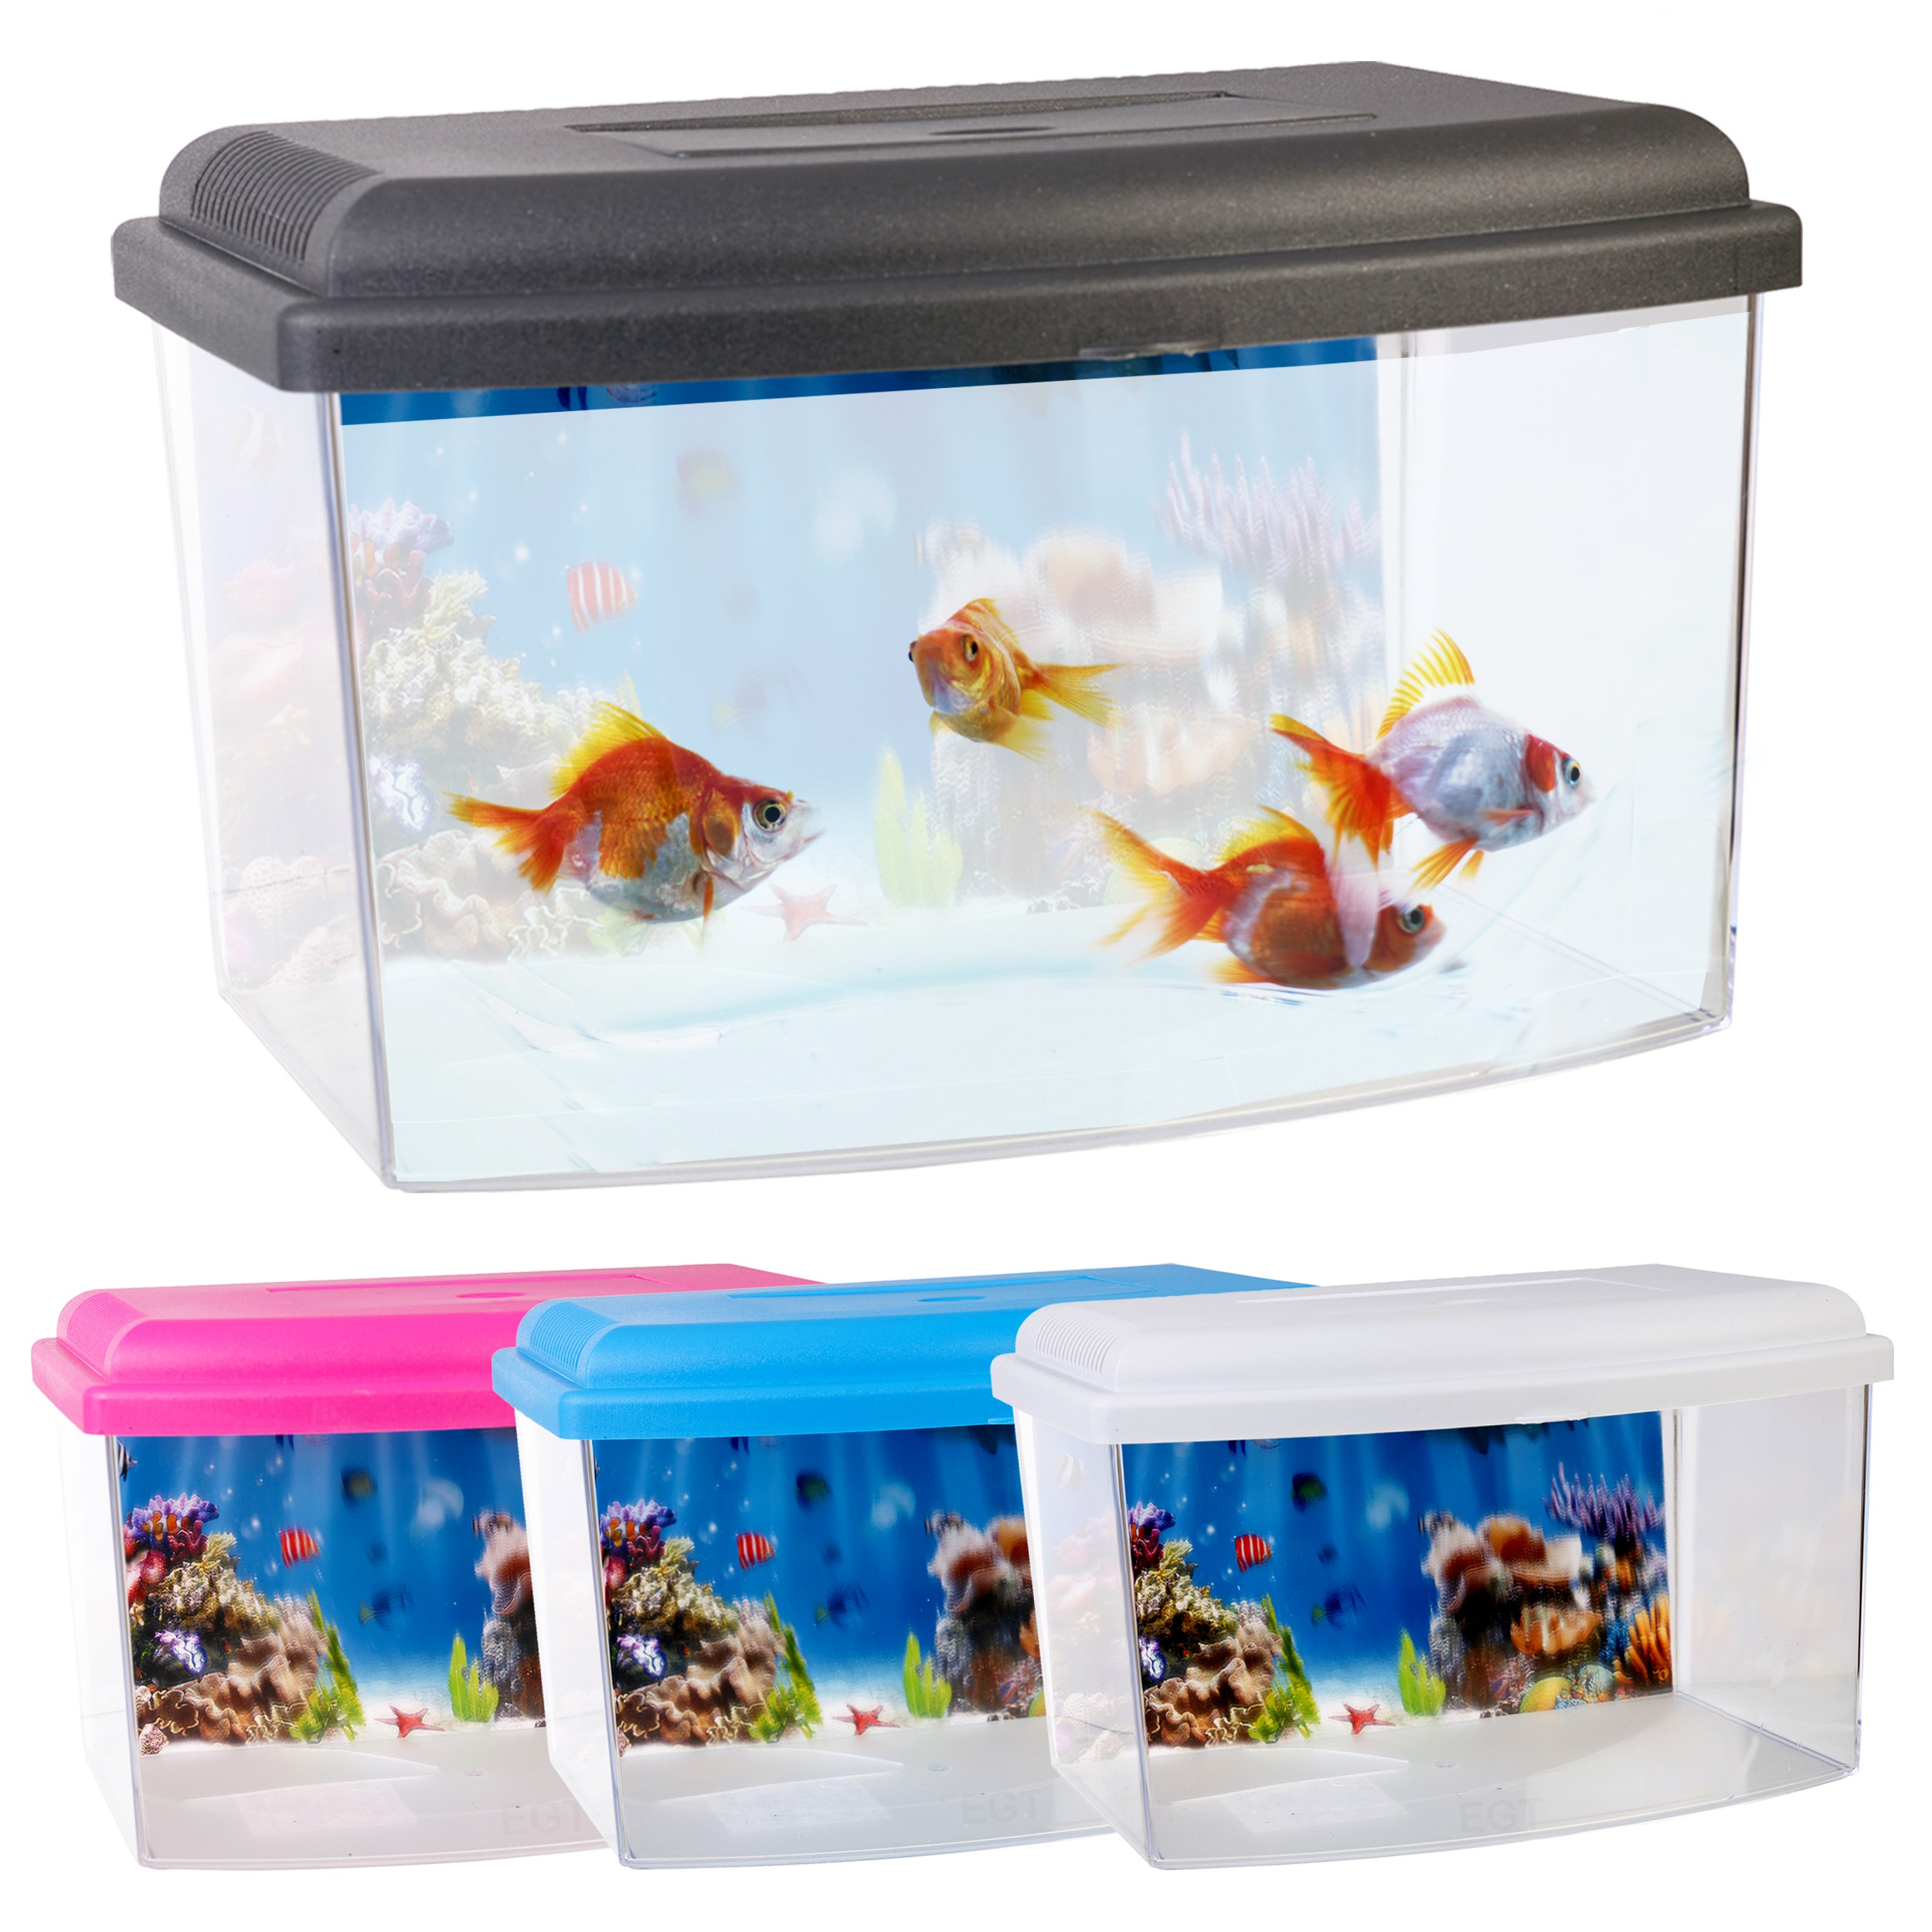 ... Starter Aquarium With Lid & Handle 2.5 Litre Capacity Fish Tank New